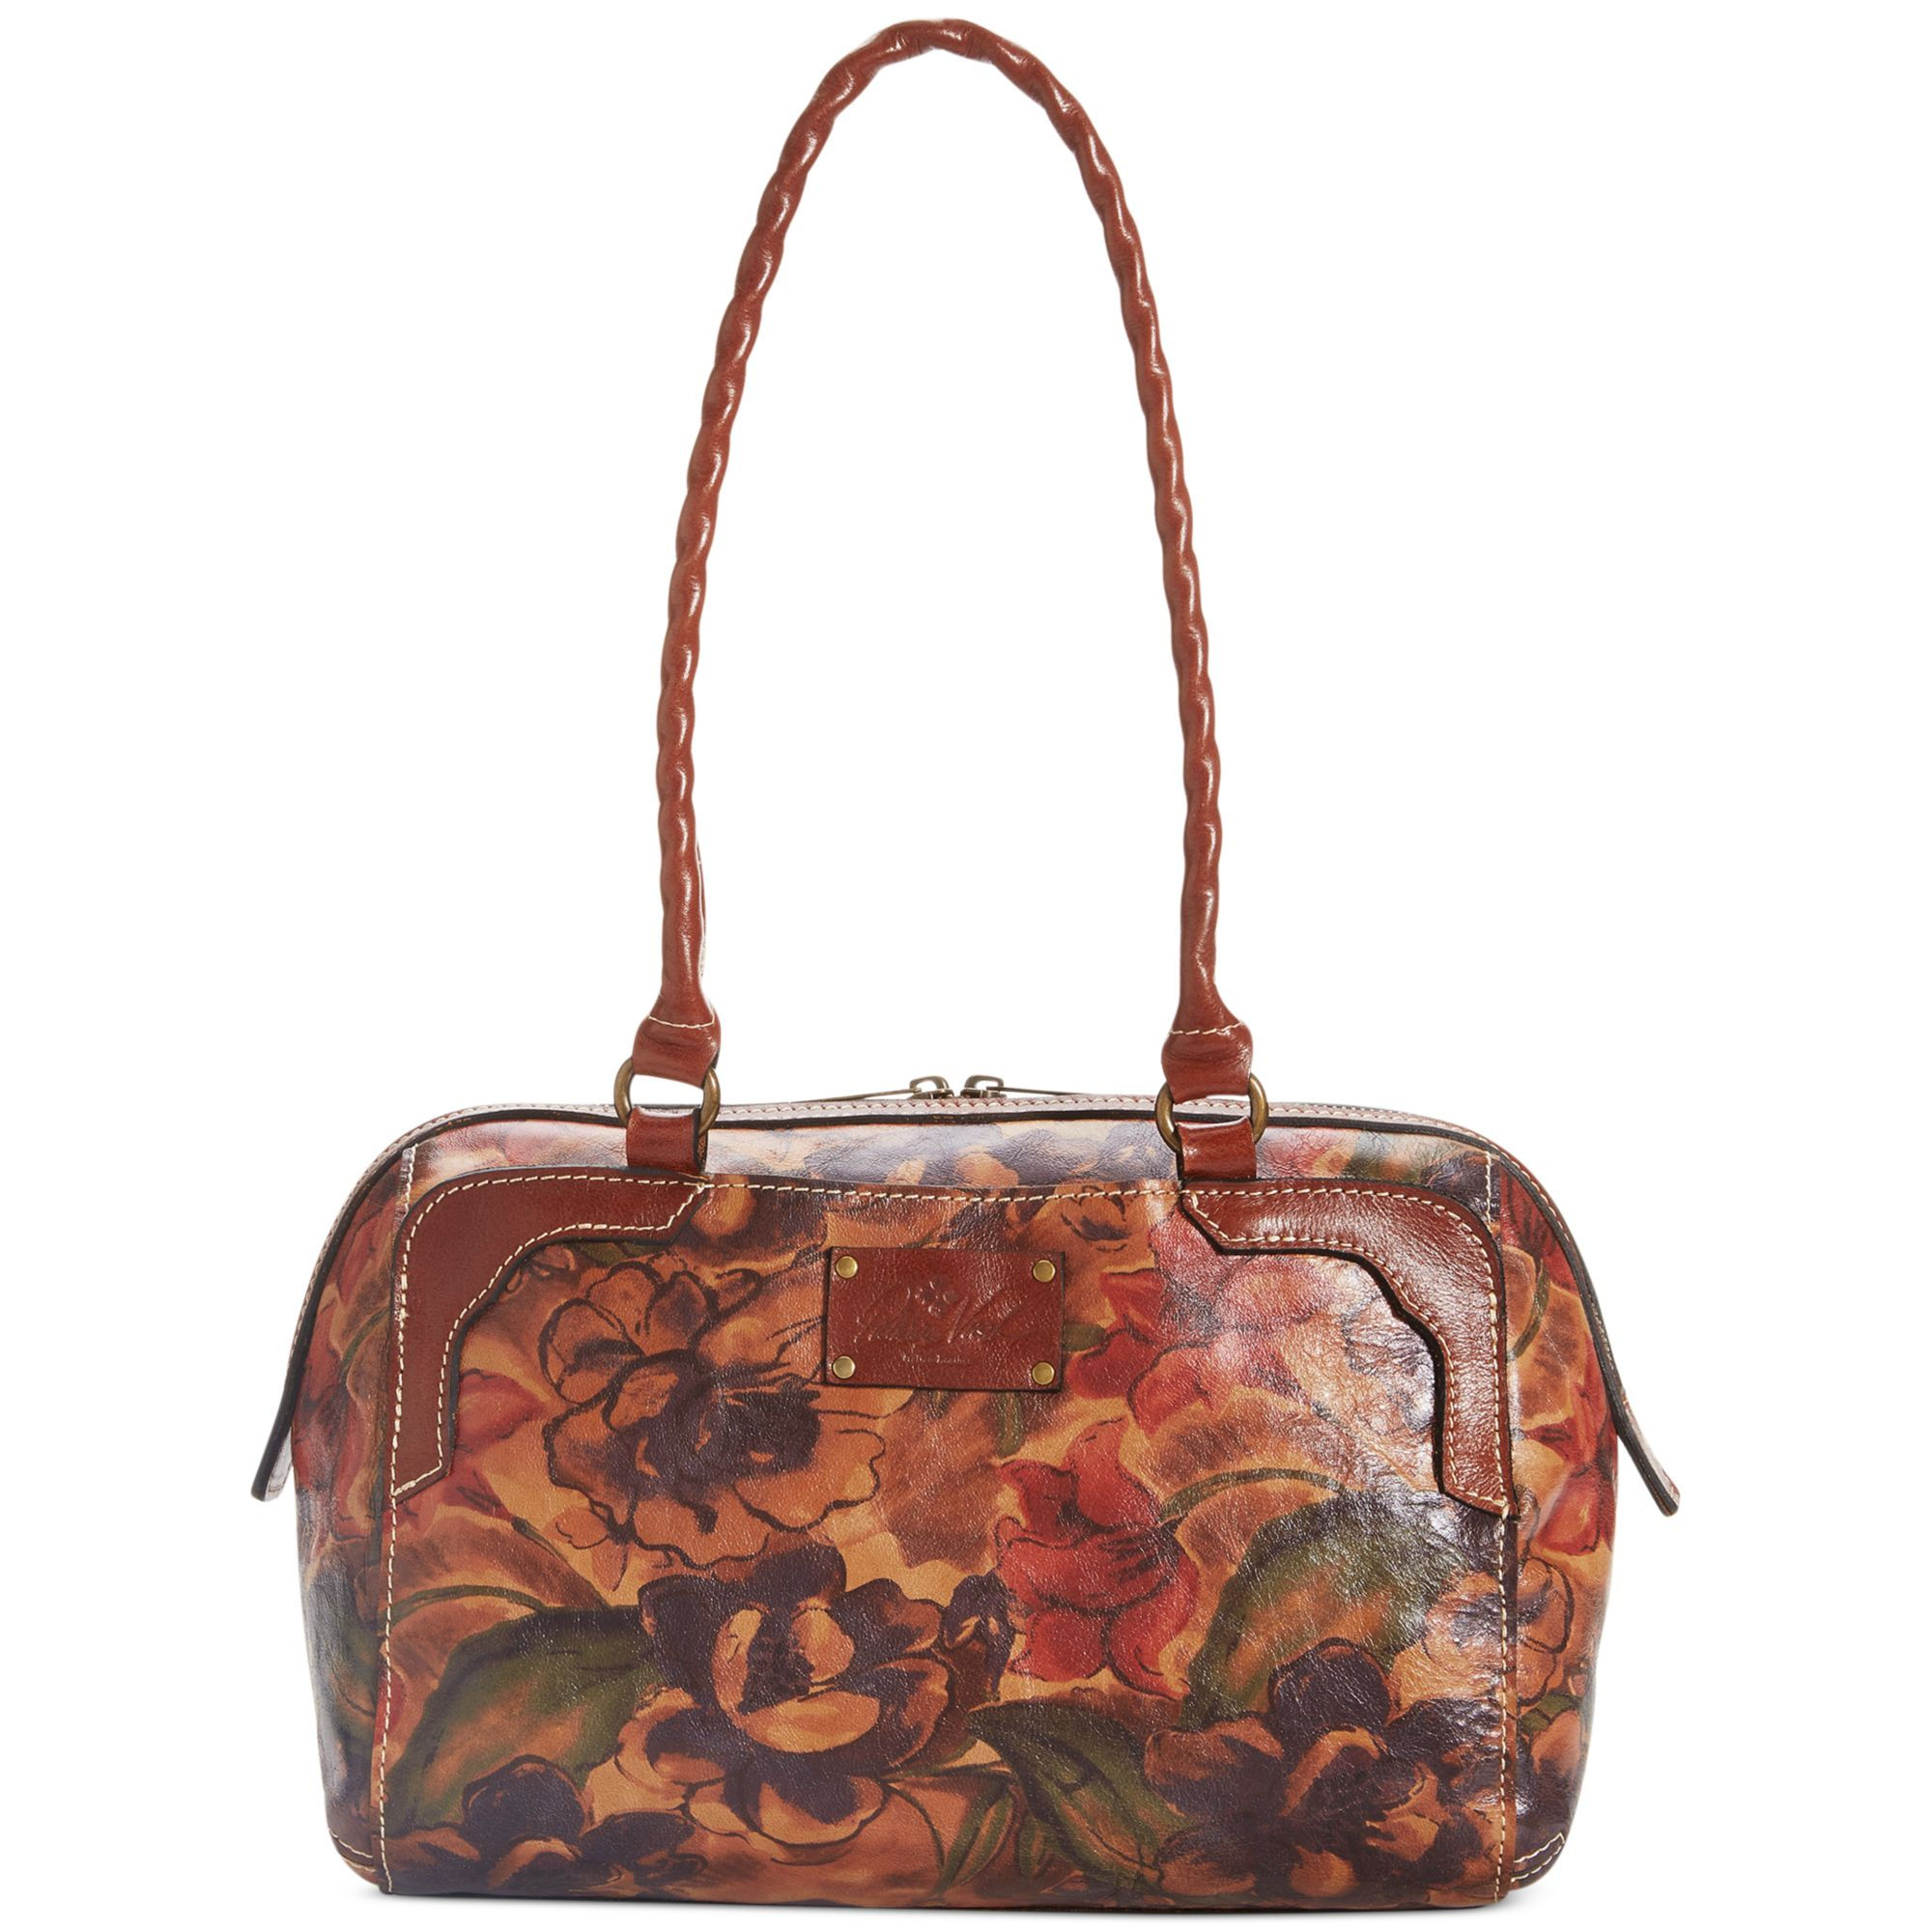 Patricia Nash Andria Floral Embossed Cross Body Bag In